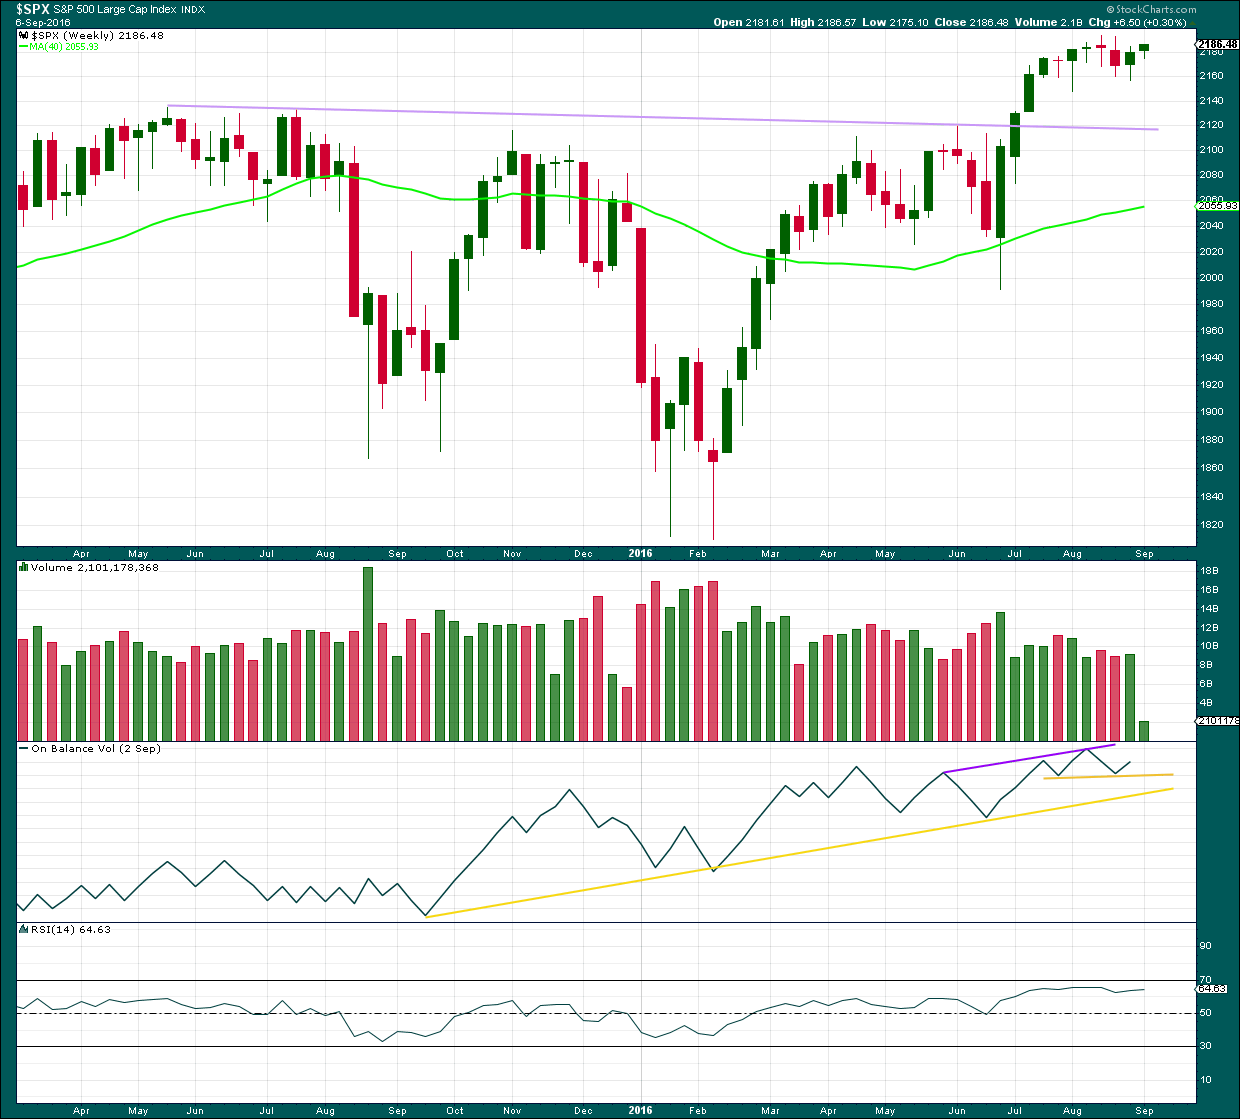 S&P 500 weekly 2016